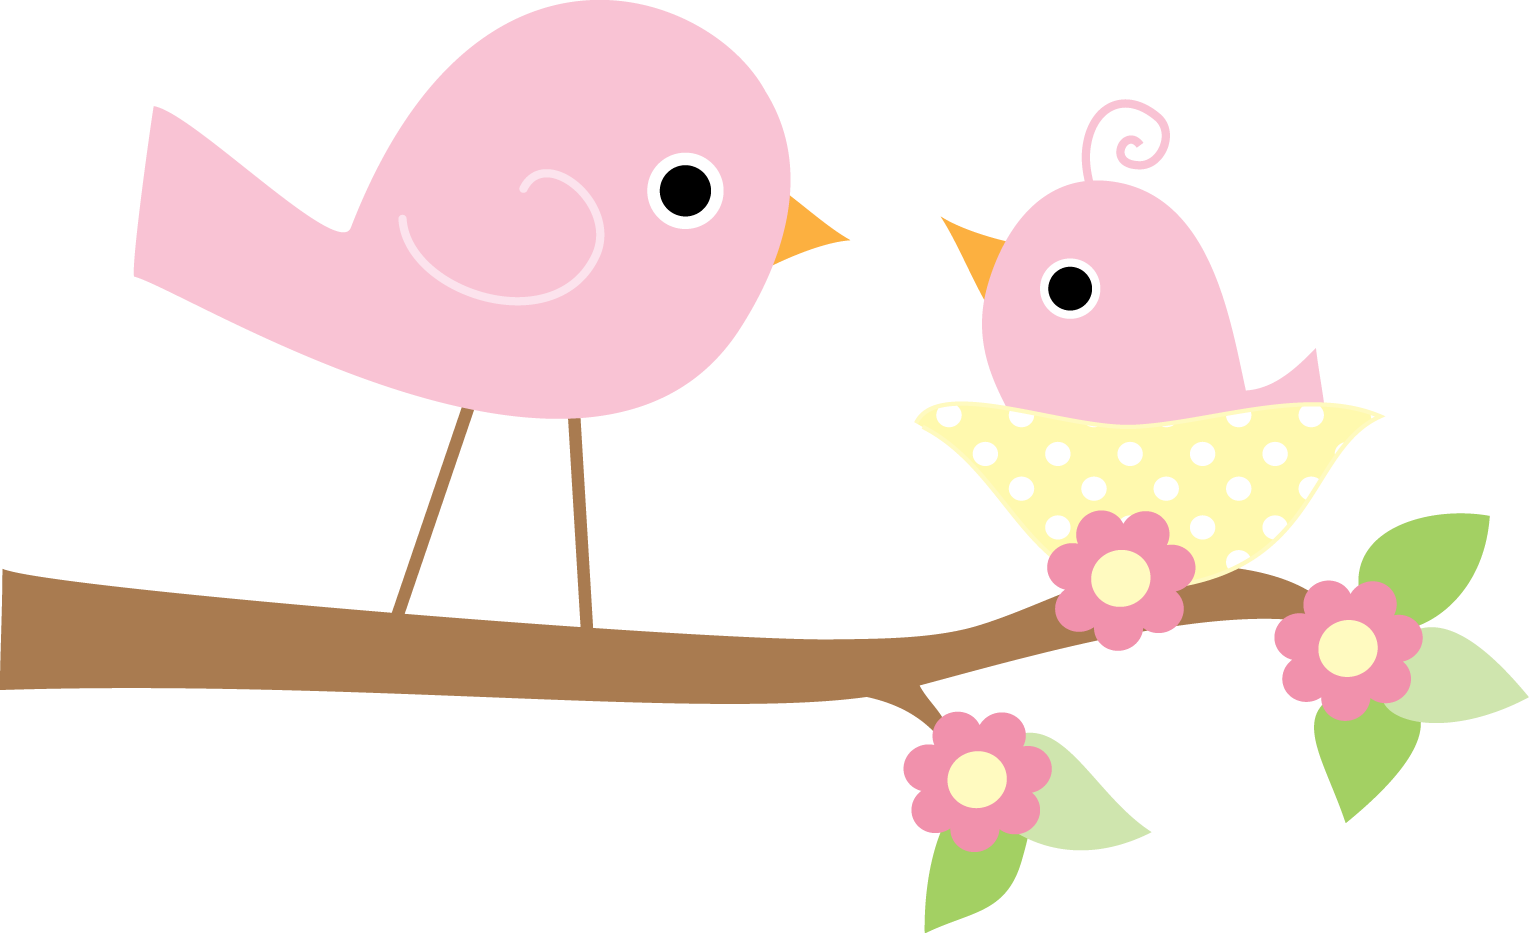 Twin drawing bird. Clipart de lindos pajaritos